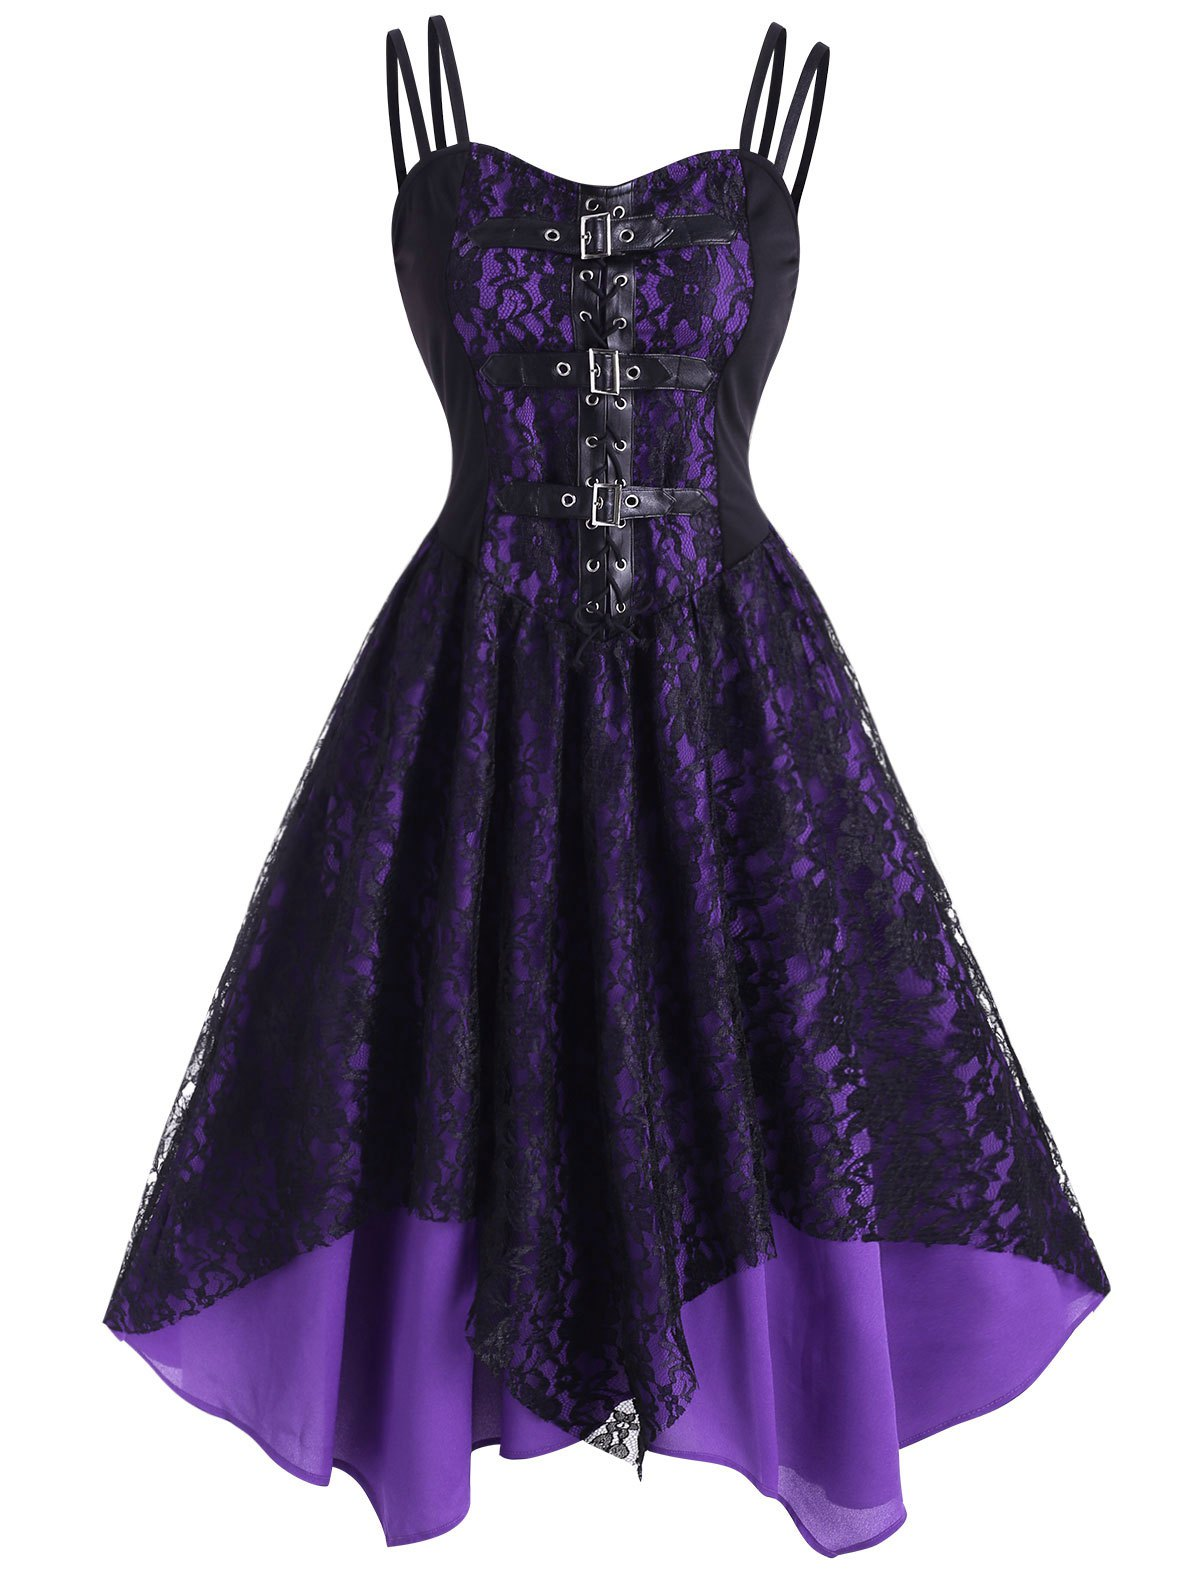 Lace Overlay Lace-Up Dual Straps Handkerchief Dress